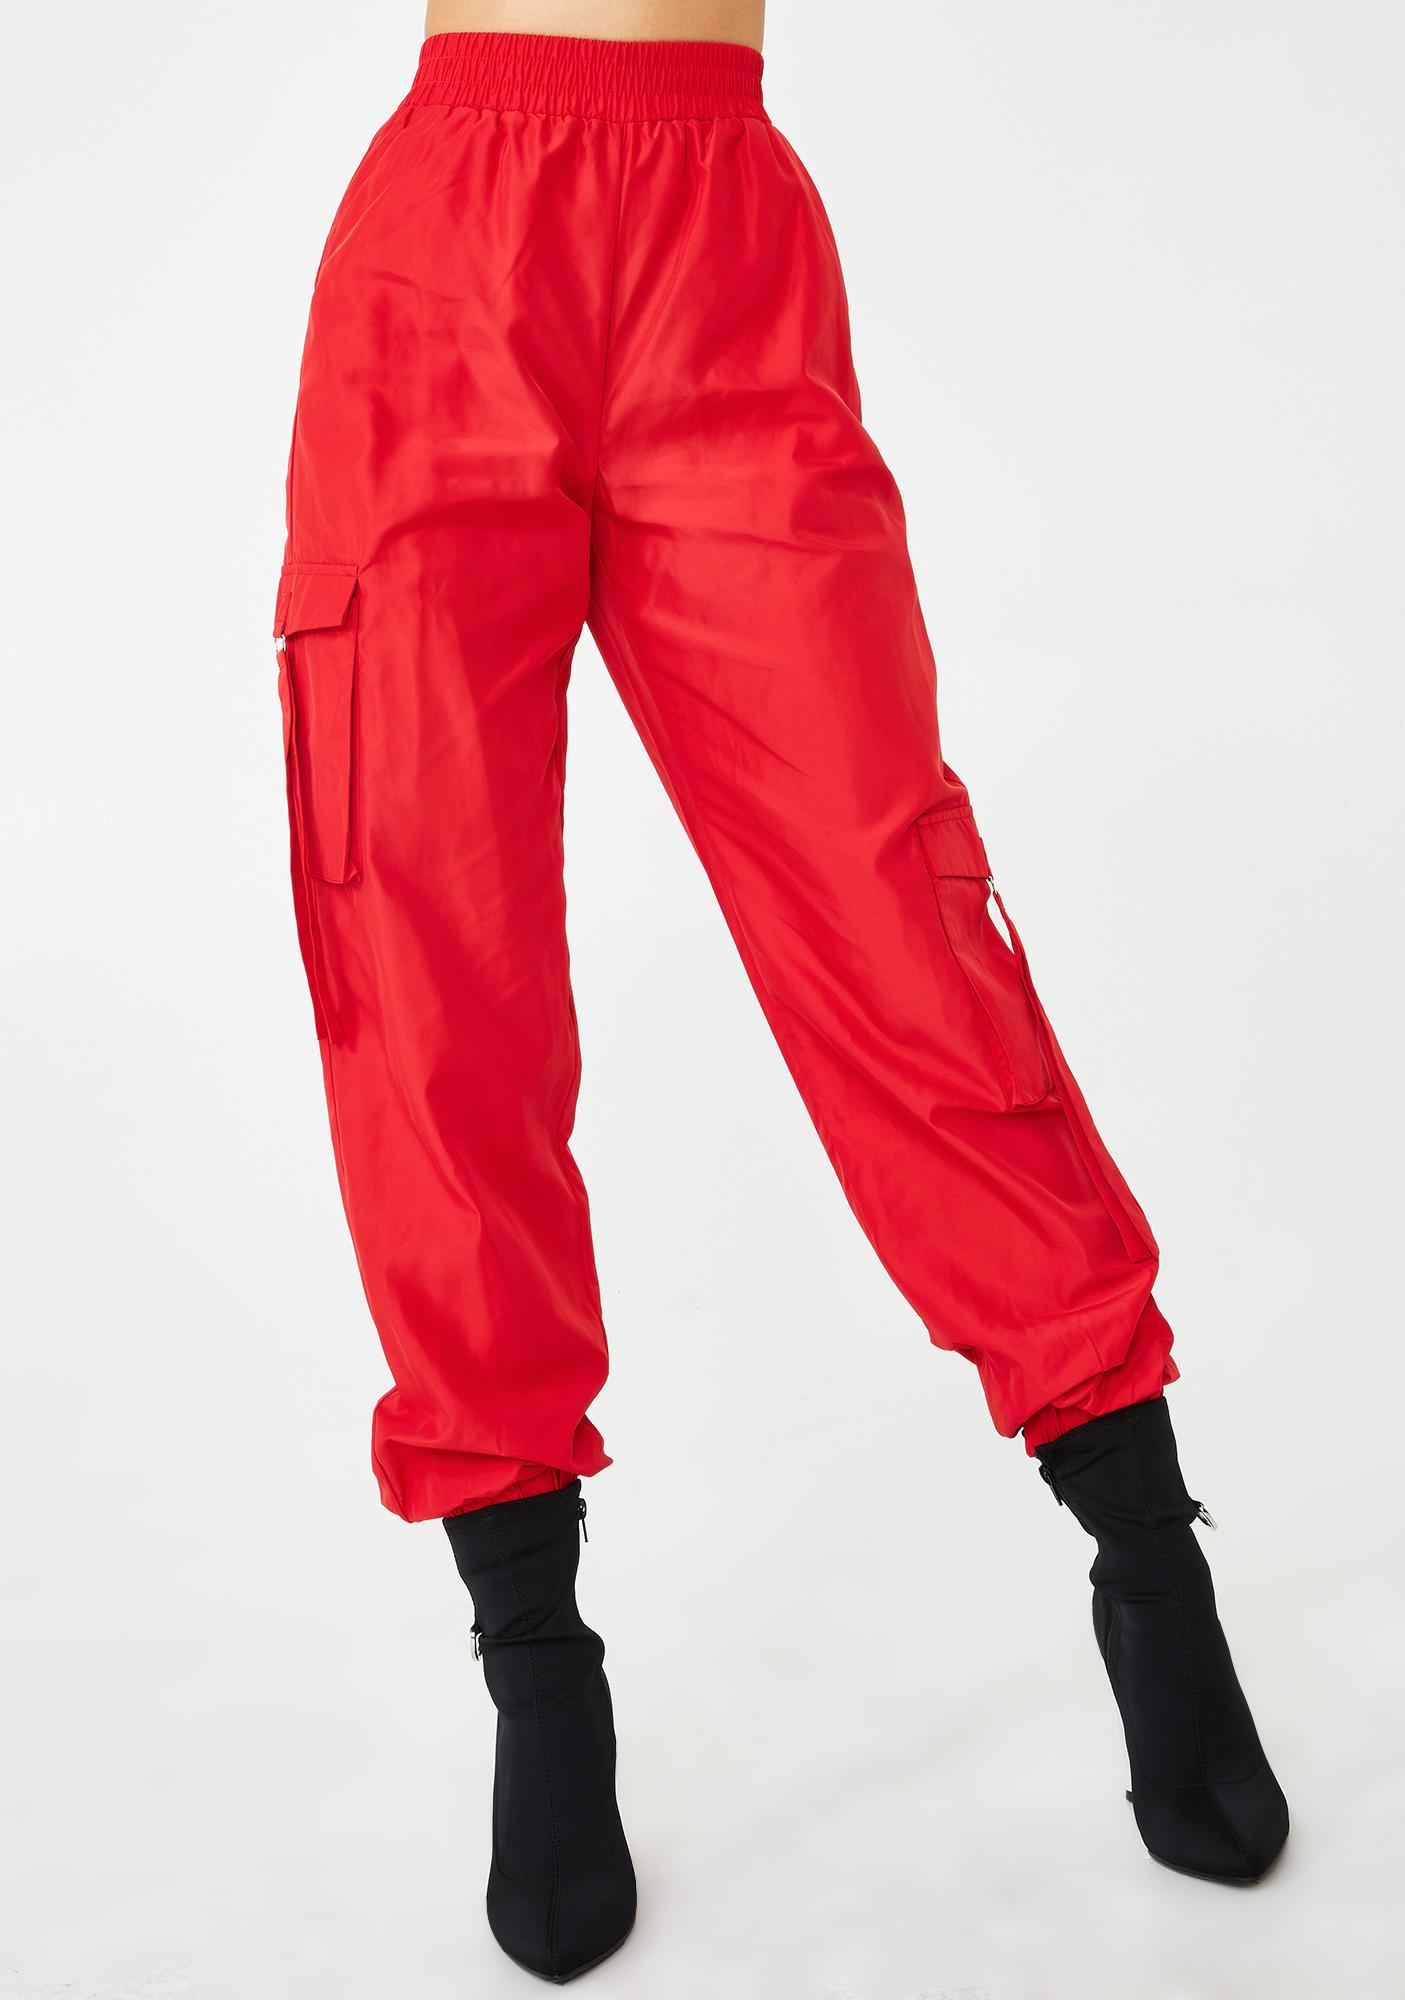 Tiger Mist Red Floss Cargo Pants